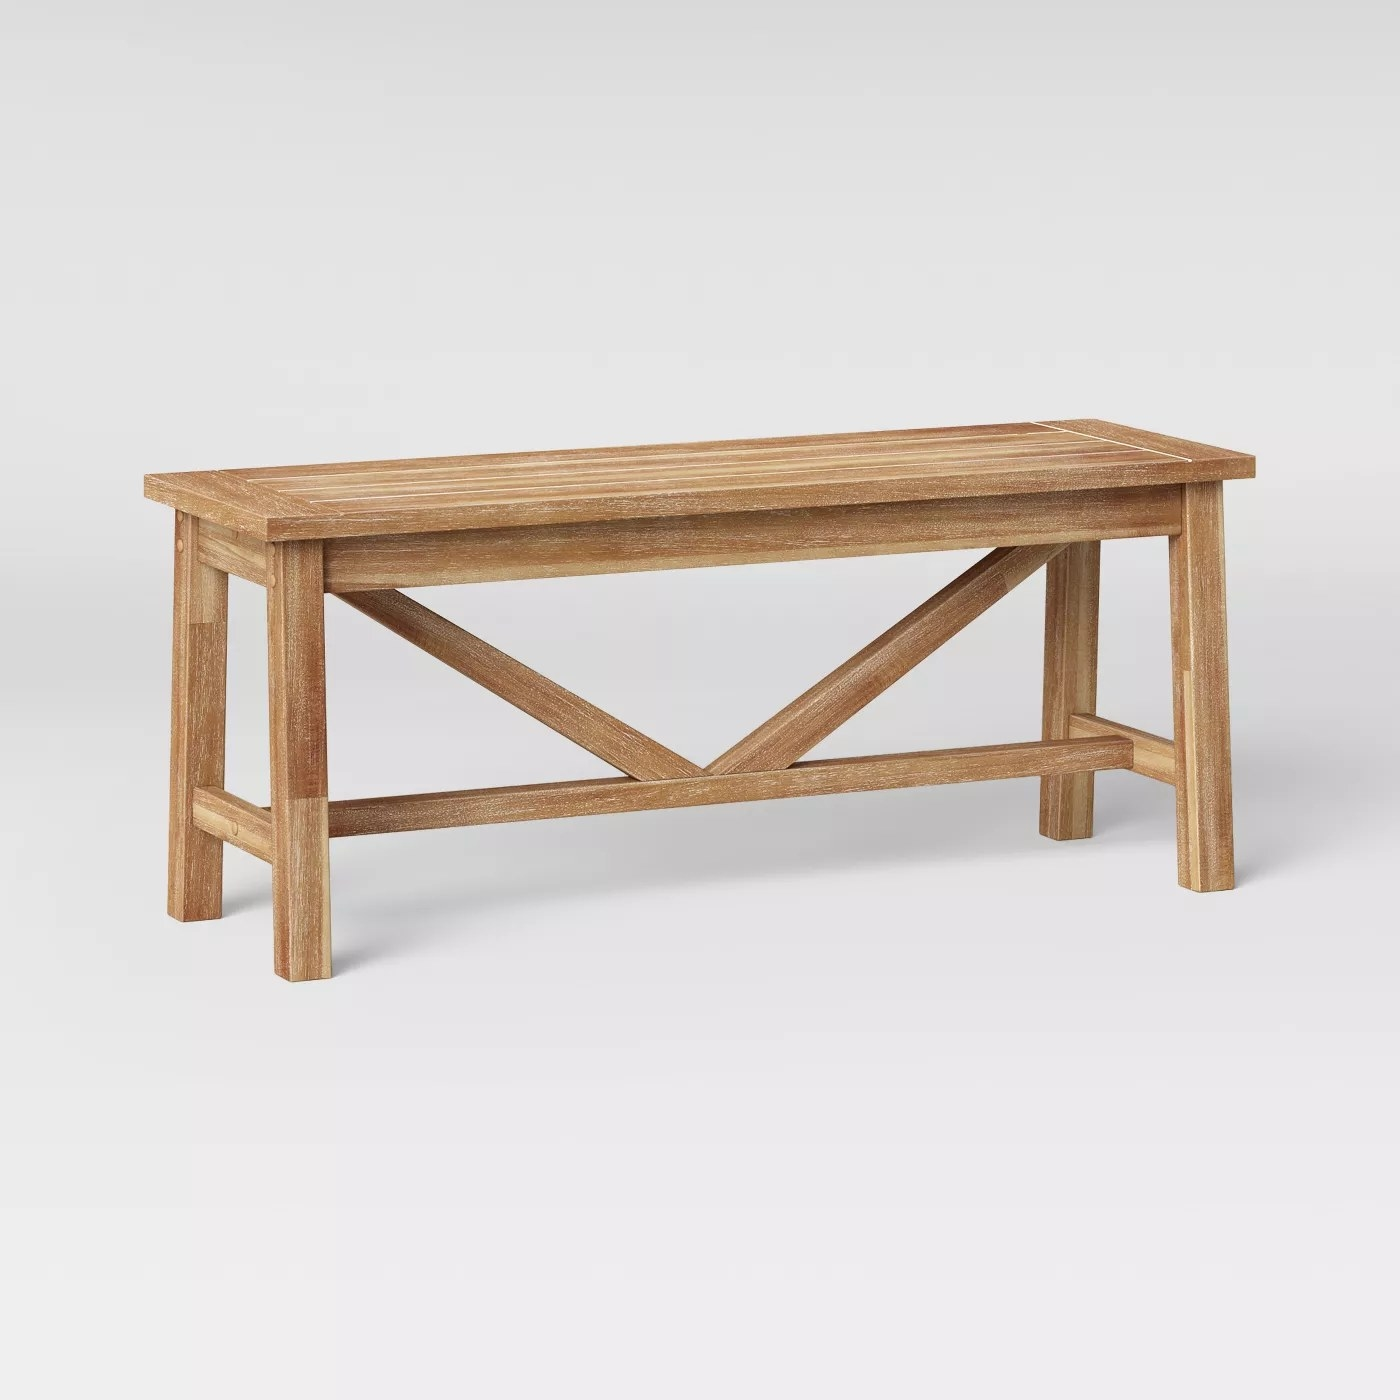 The light wood dining bench